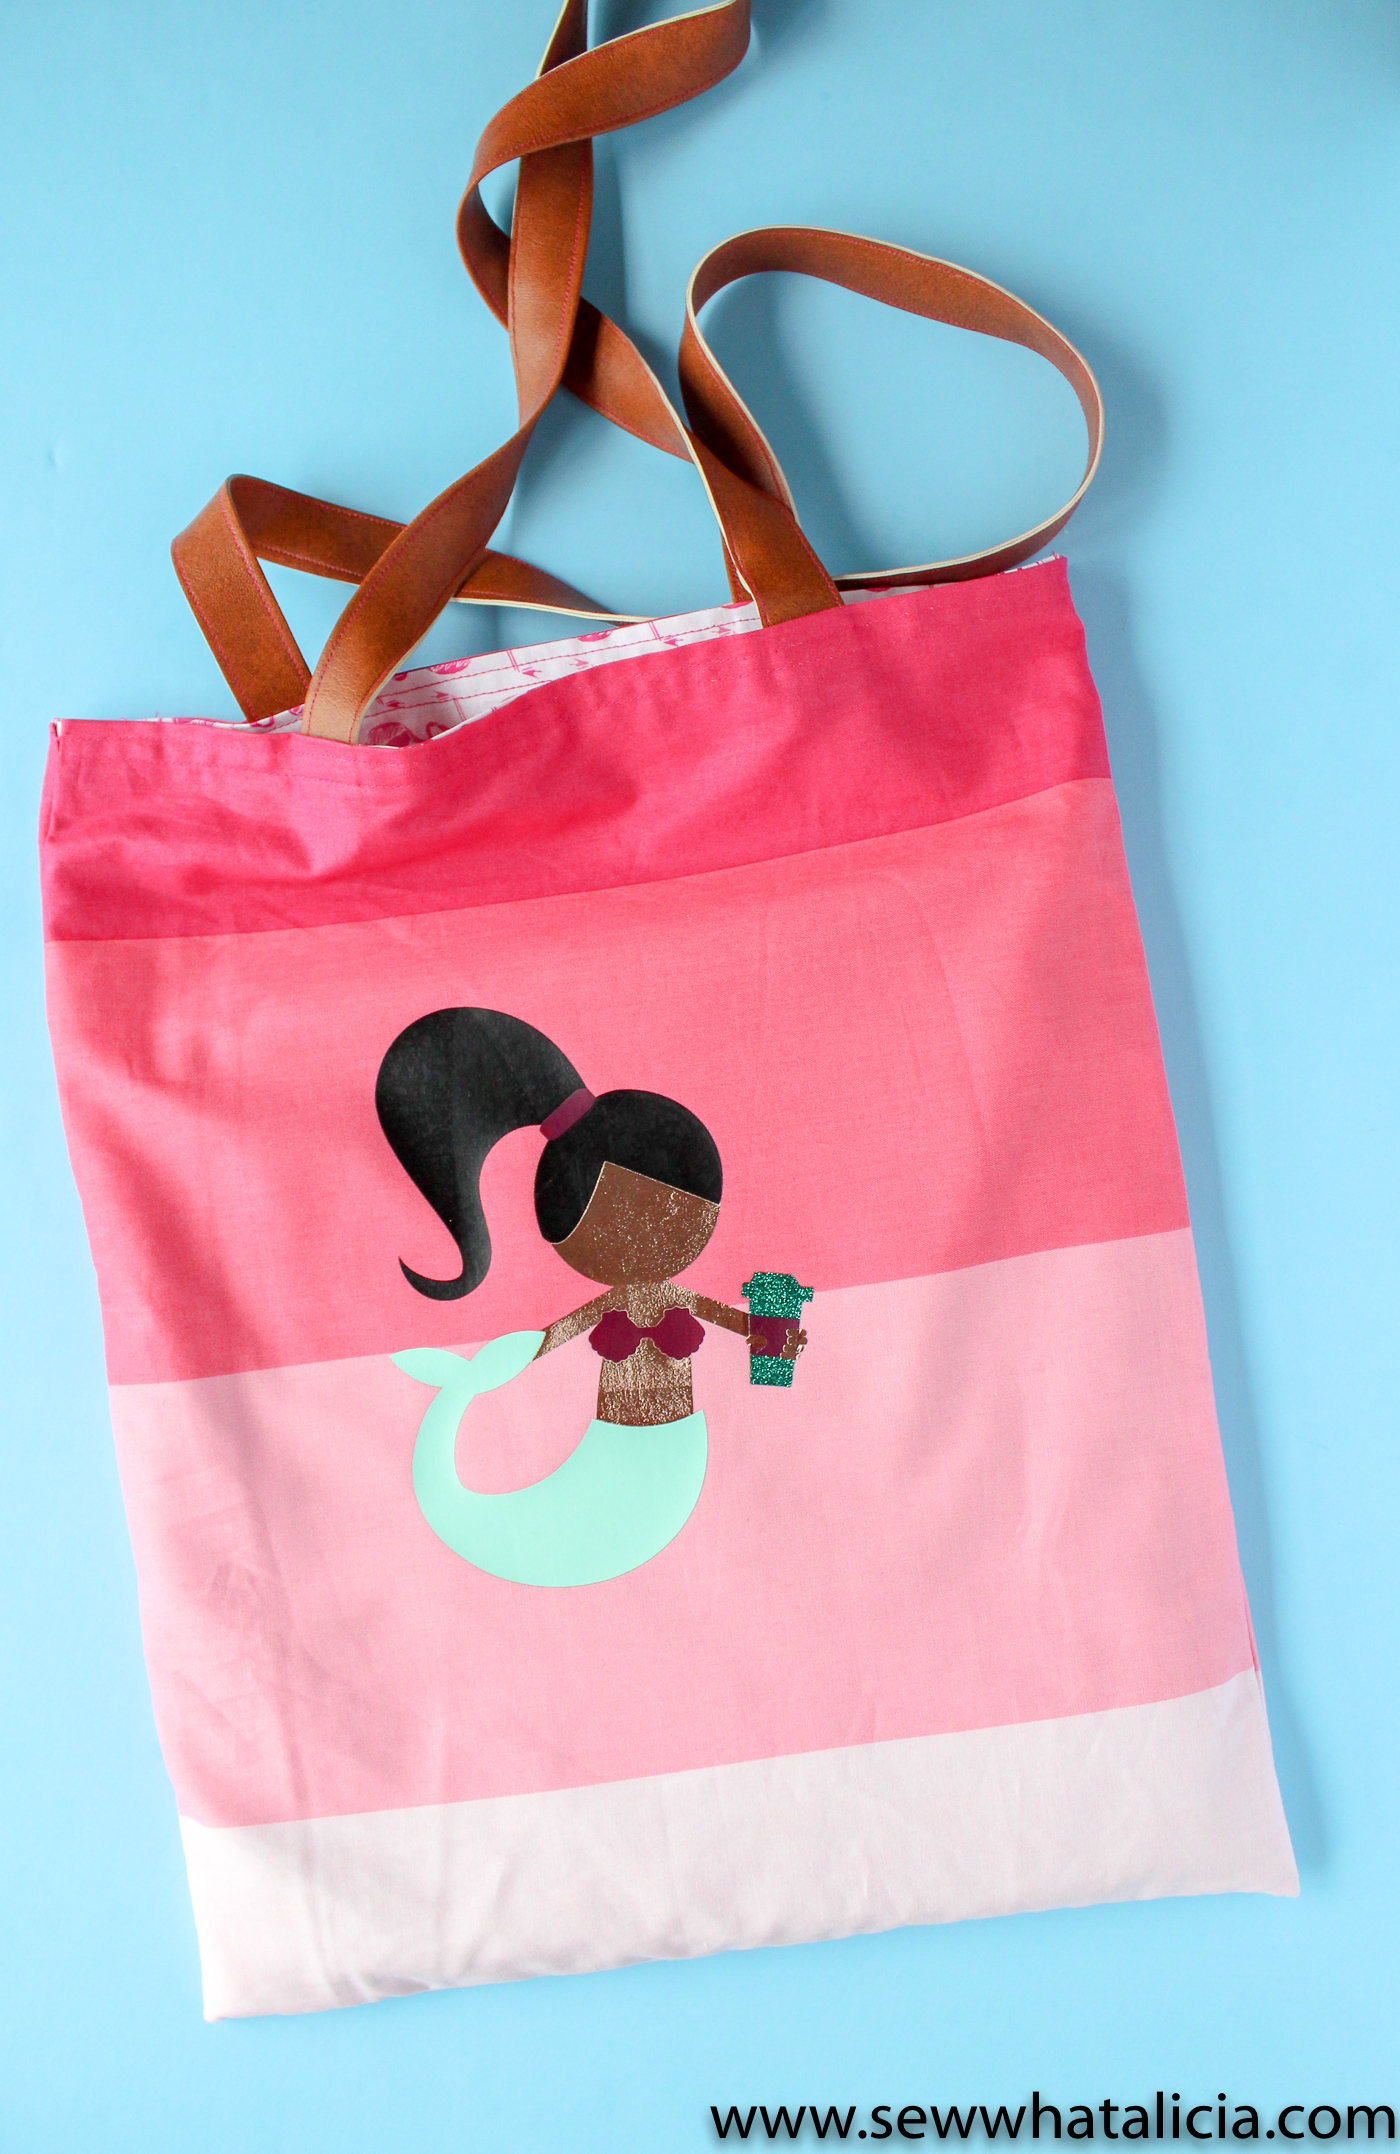 Mermaid SVG File: Finished tote with mermaid svg file ironed on. | www.sewwhatalicia.com